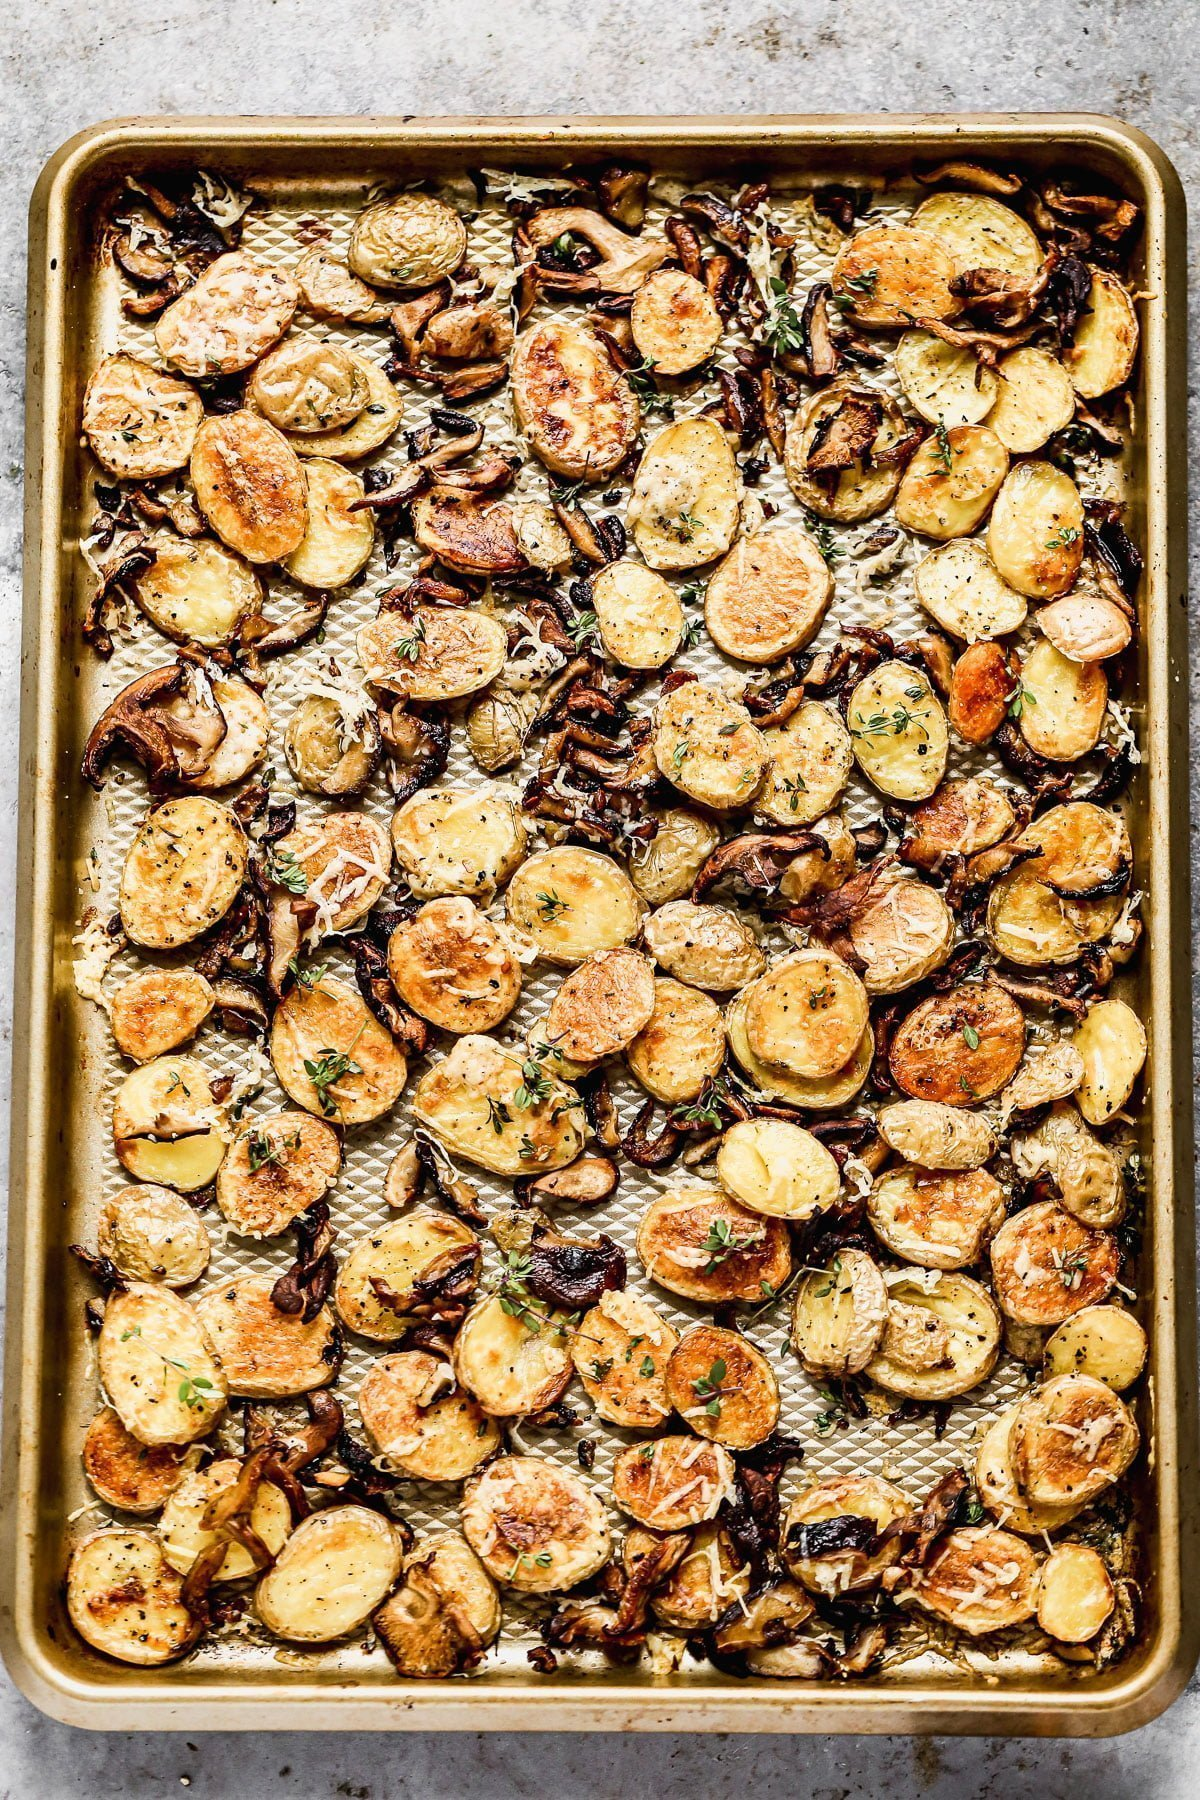 Crispy Parmesan Roasted Potatoes and Mushrooms, always. We roast buttery yukon gold potatoes and woodsy shiitake mushrooms until they're irresistibly crispy and golden, then toss them with nutty parmesan cheese and fresh thyme. Simple, but so delicious.